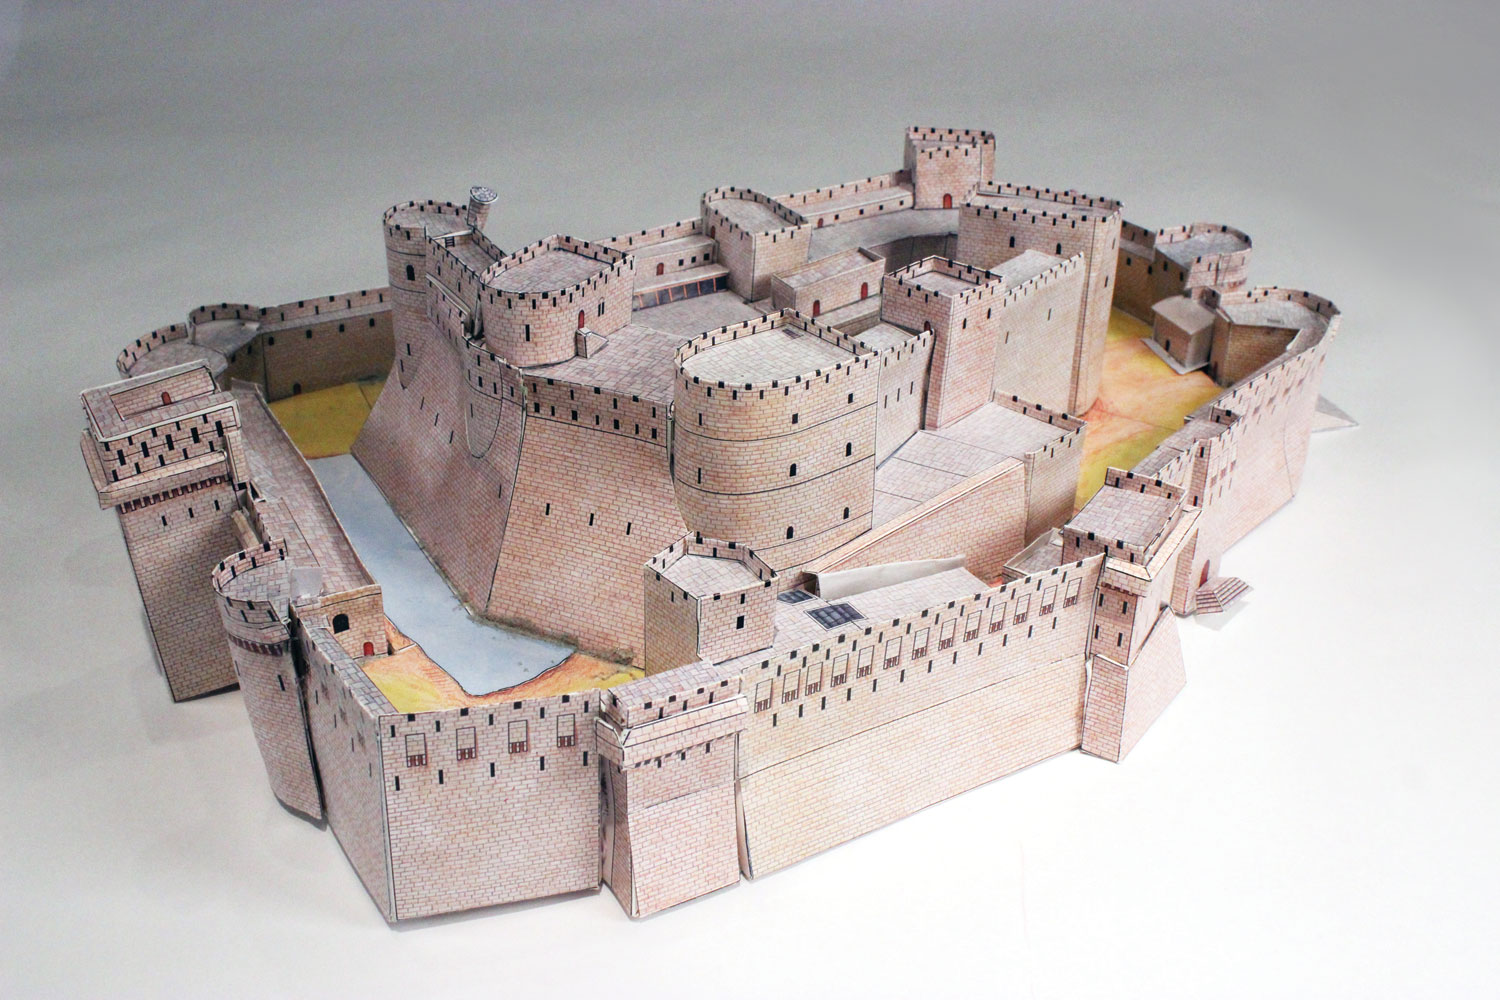 It's just a picture of Shocking Building Paper Models